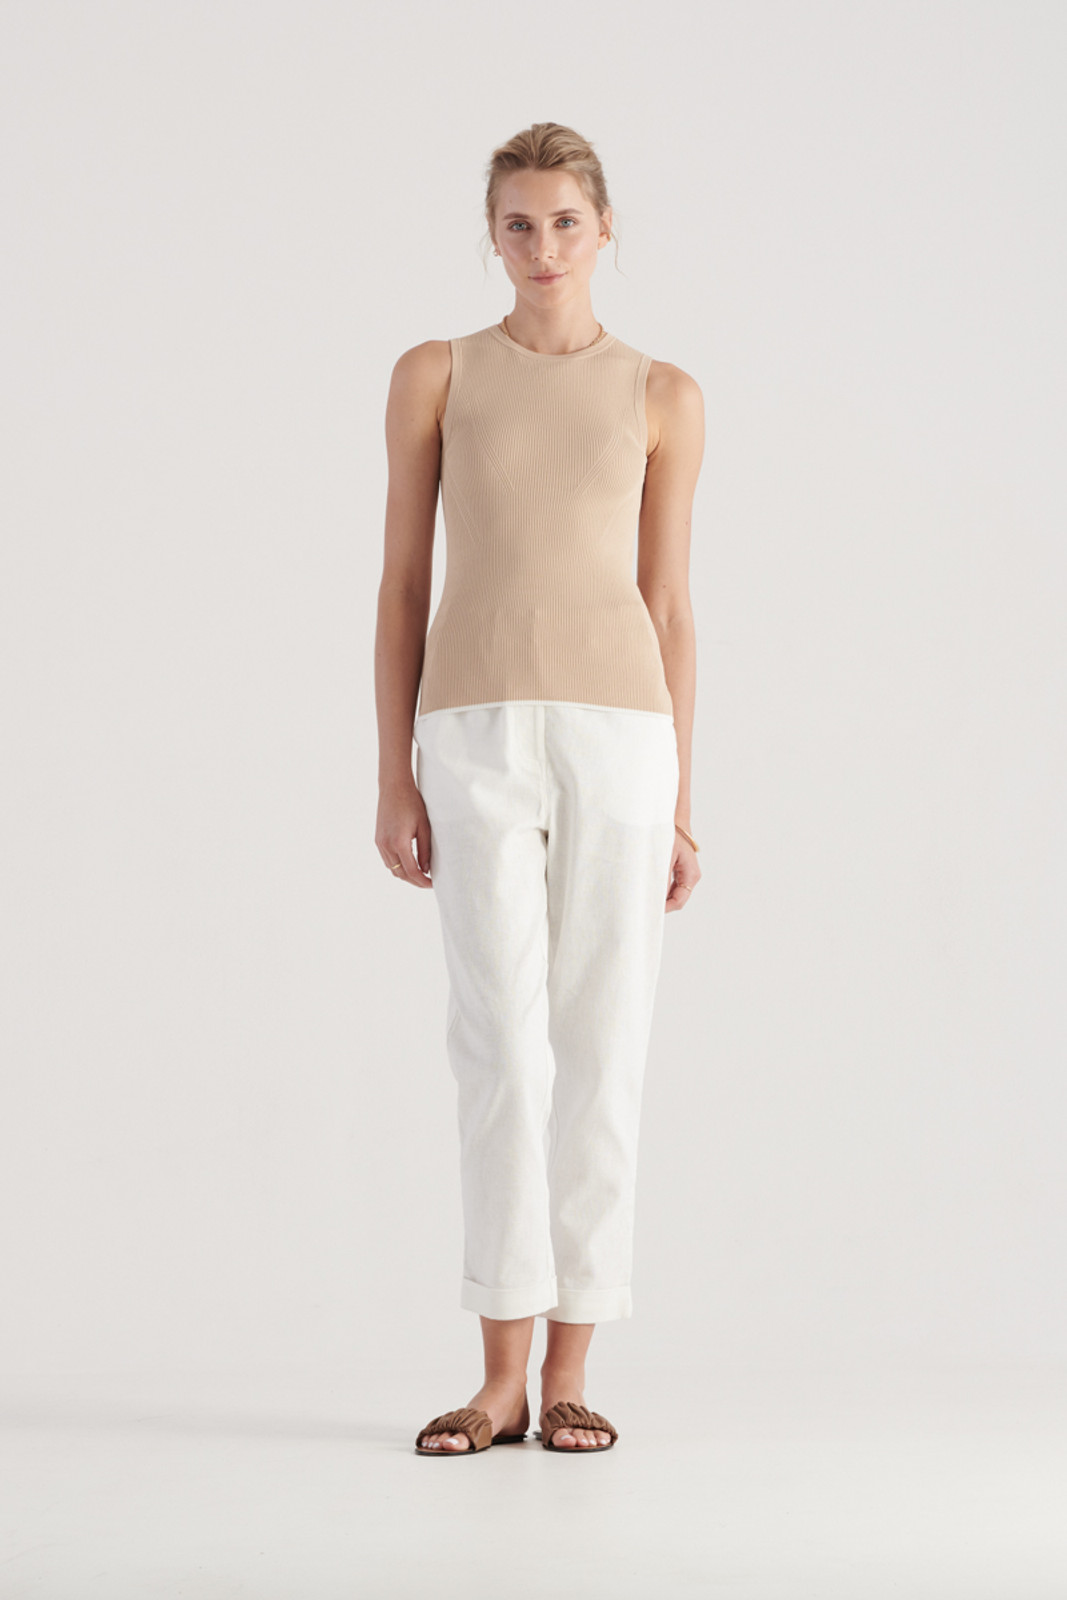 Elka Collective WomensTone Knit Top Sand  1